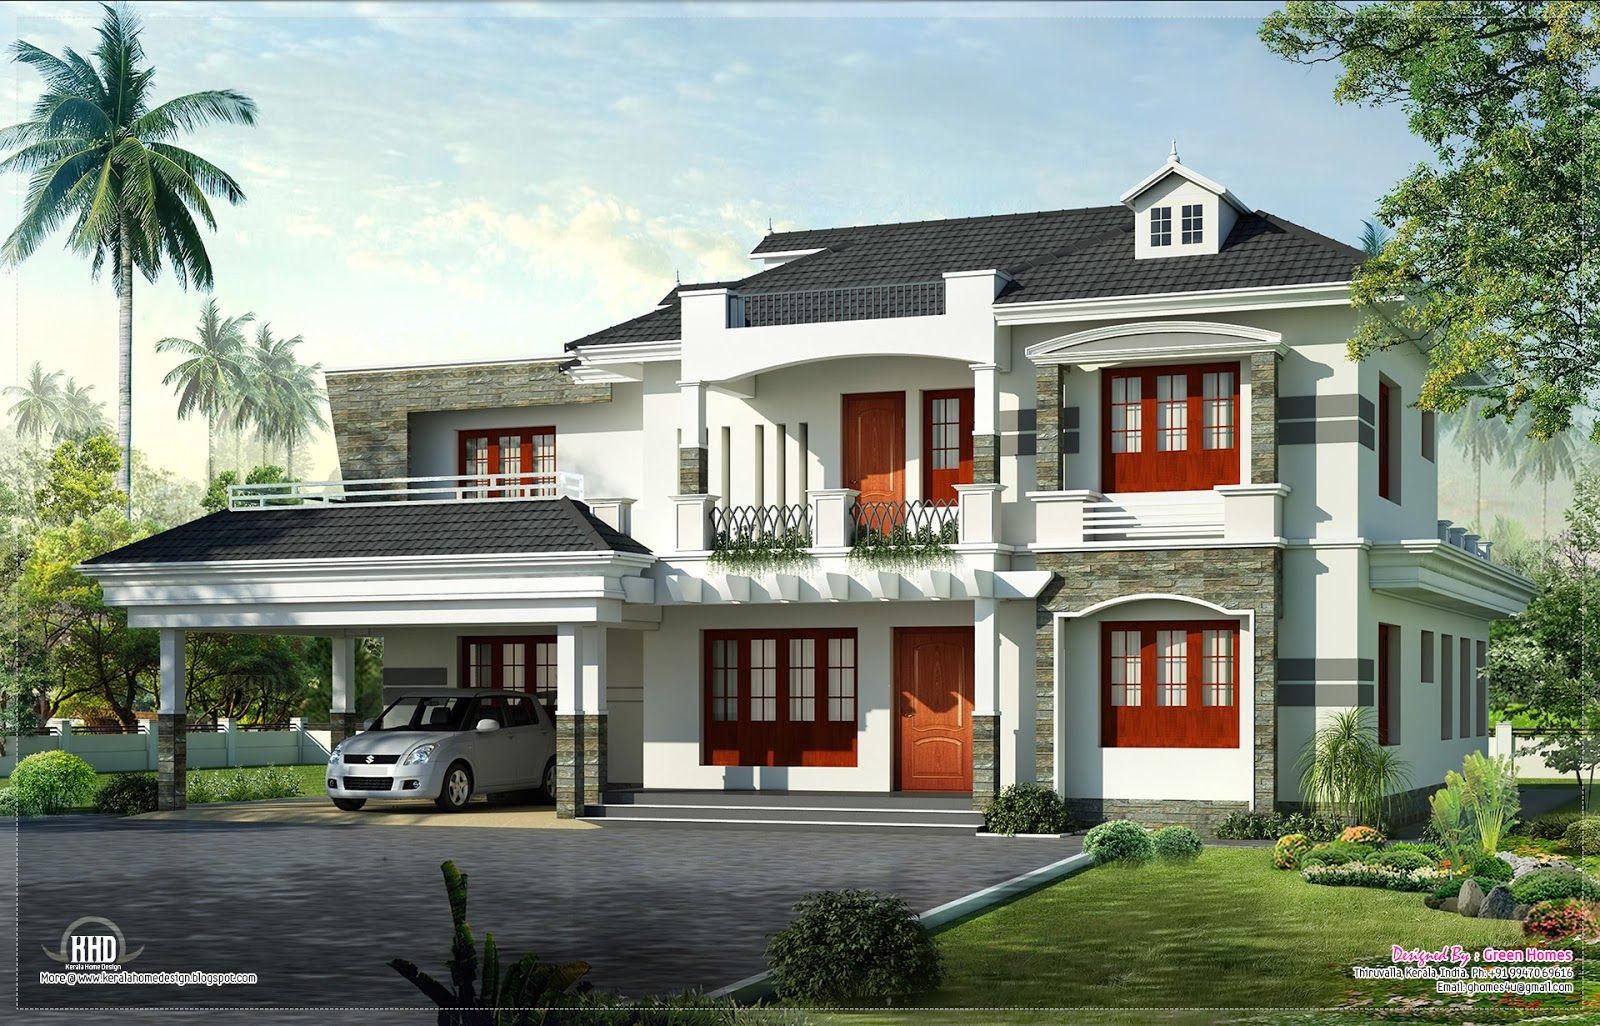 Perfect Kerala Home Design Image kerala house plans estimate sq ft home design floor plans site plans design color rendering services Best Home Designers In Kerala